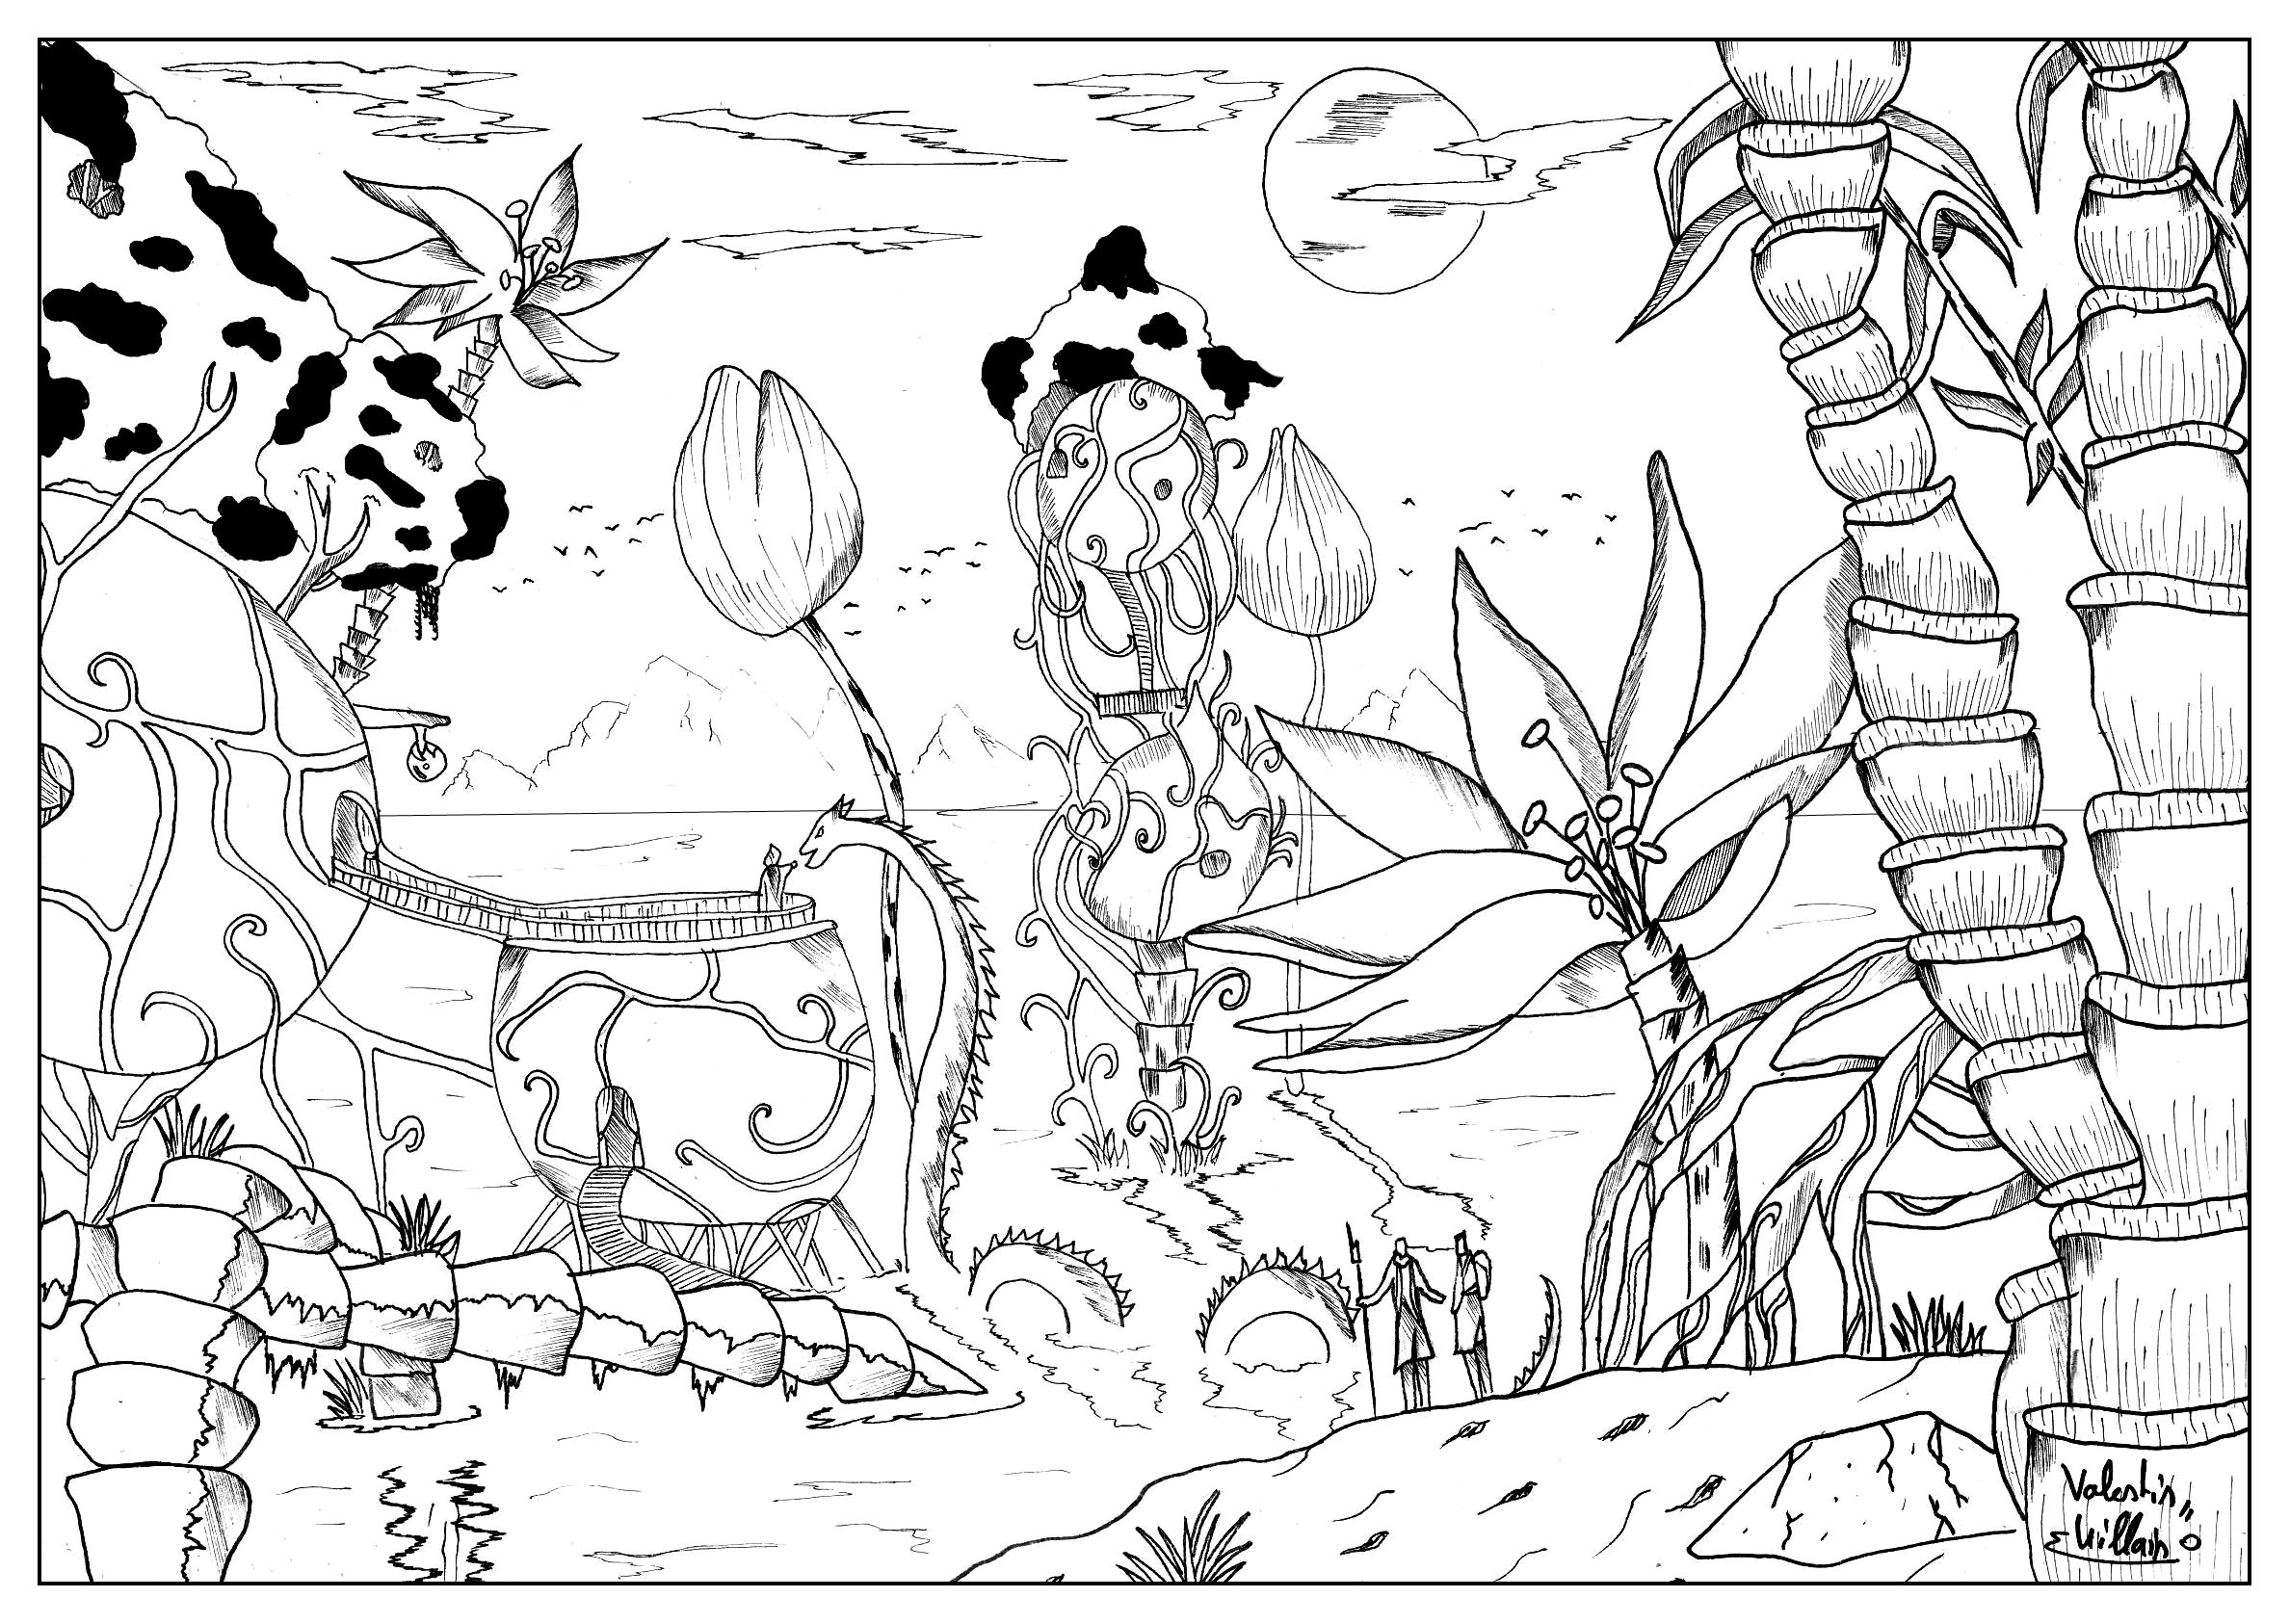 Coloring Page Landscape - Coloring page of an imaginary aquatic village with a strange creature and a mysterious character